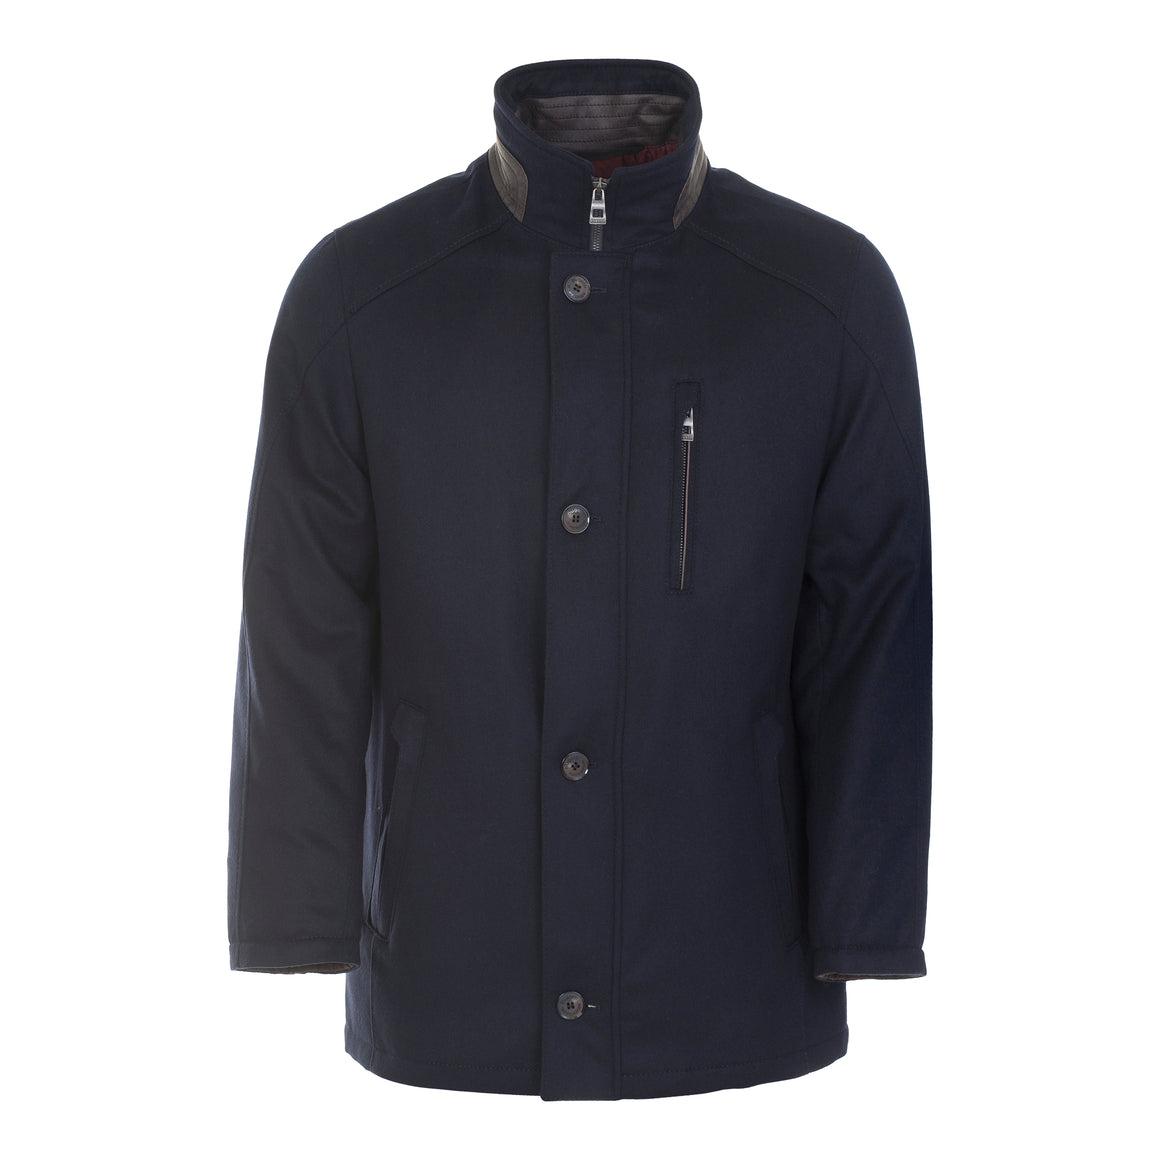 Wool Style Gortex Car Coat for Men in Navy